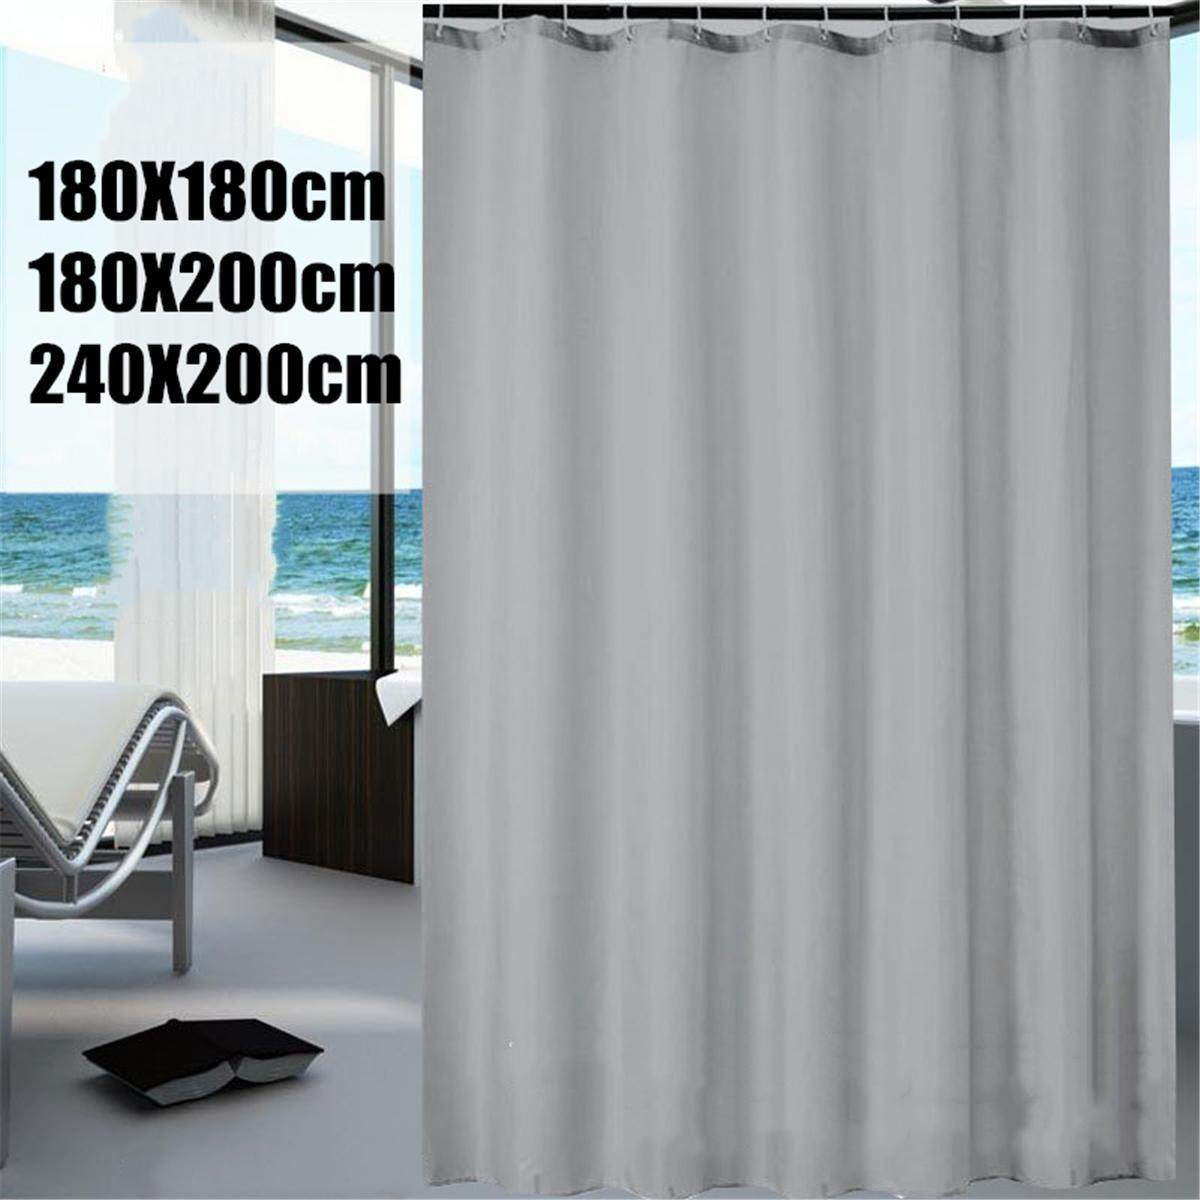 Plain Grey Fabric Shower Curtain With Hook Rings Hangers 240 200cm